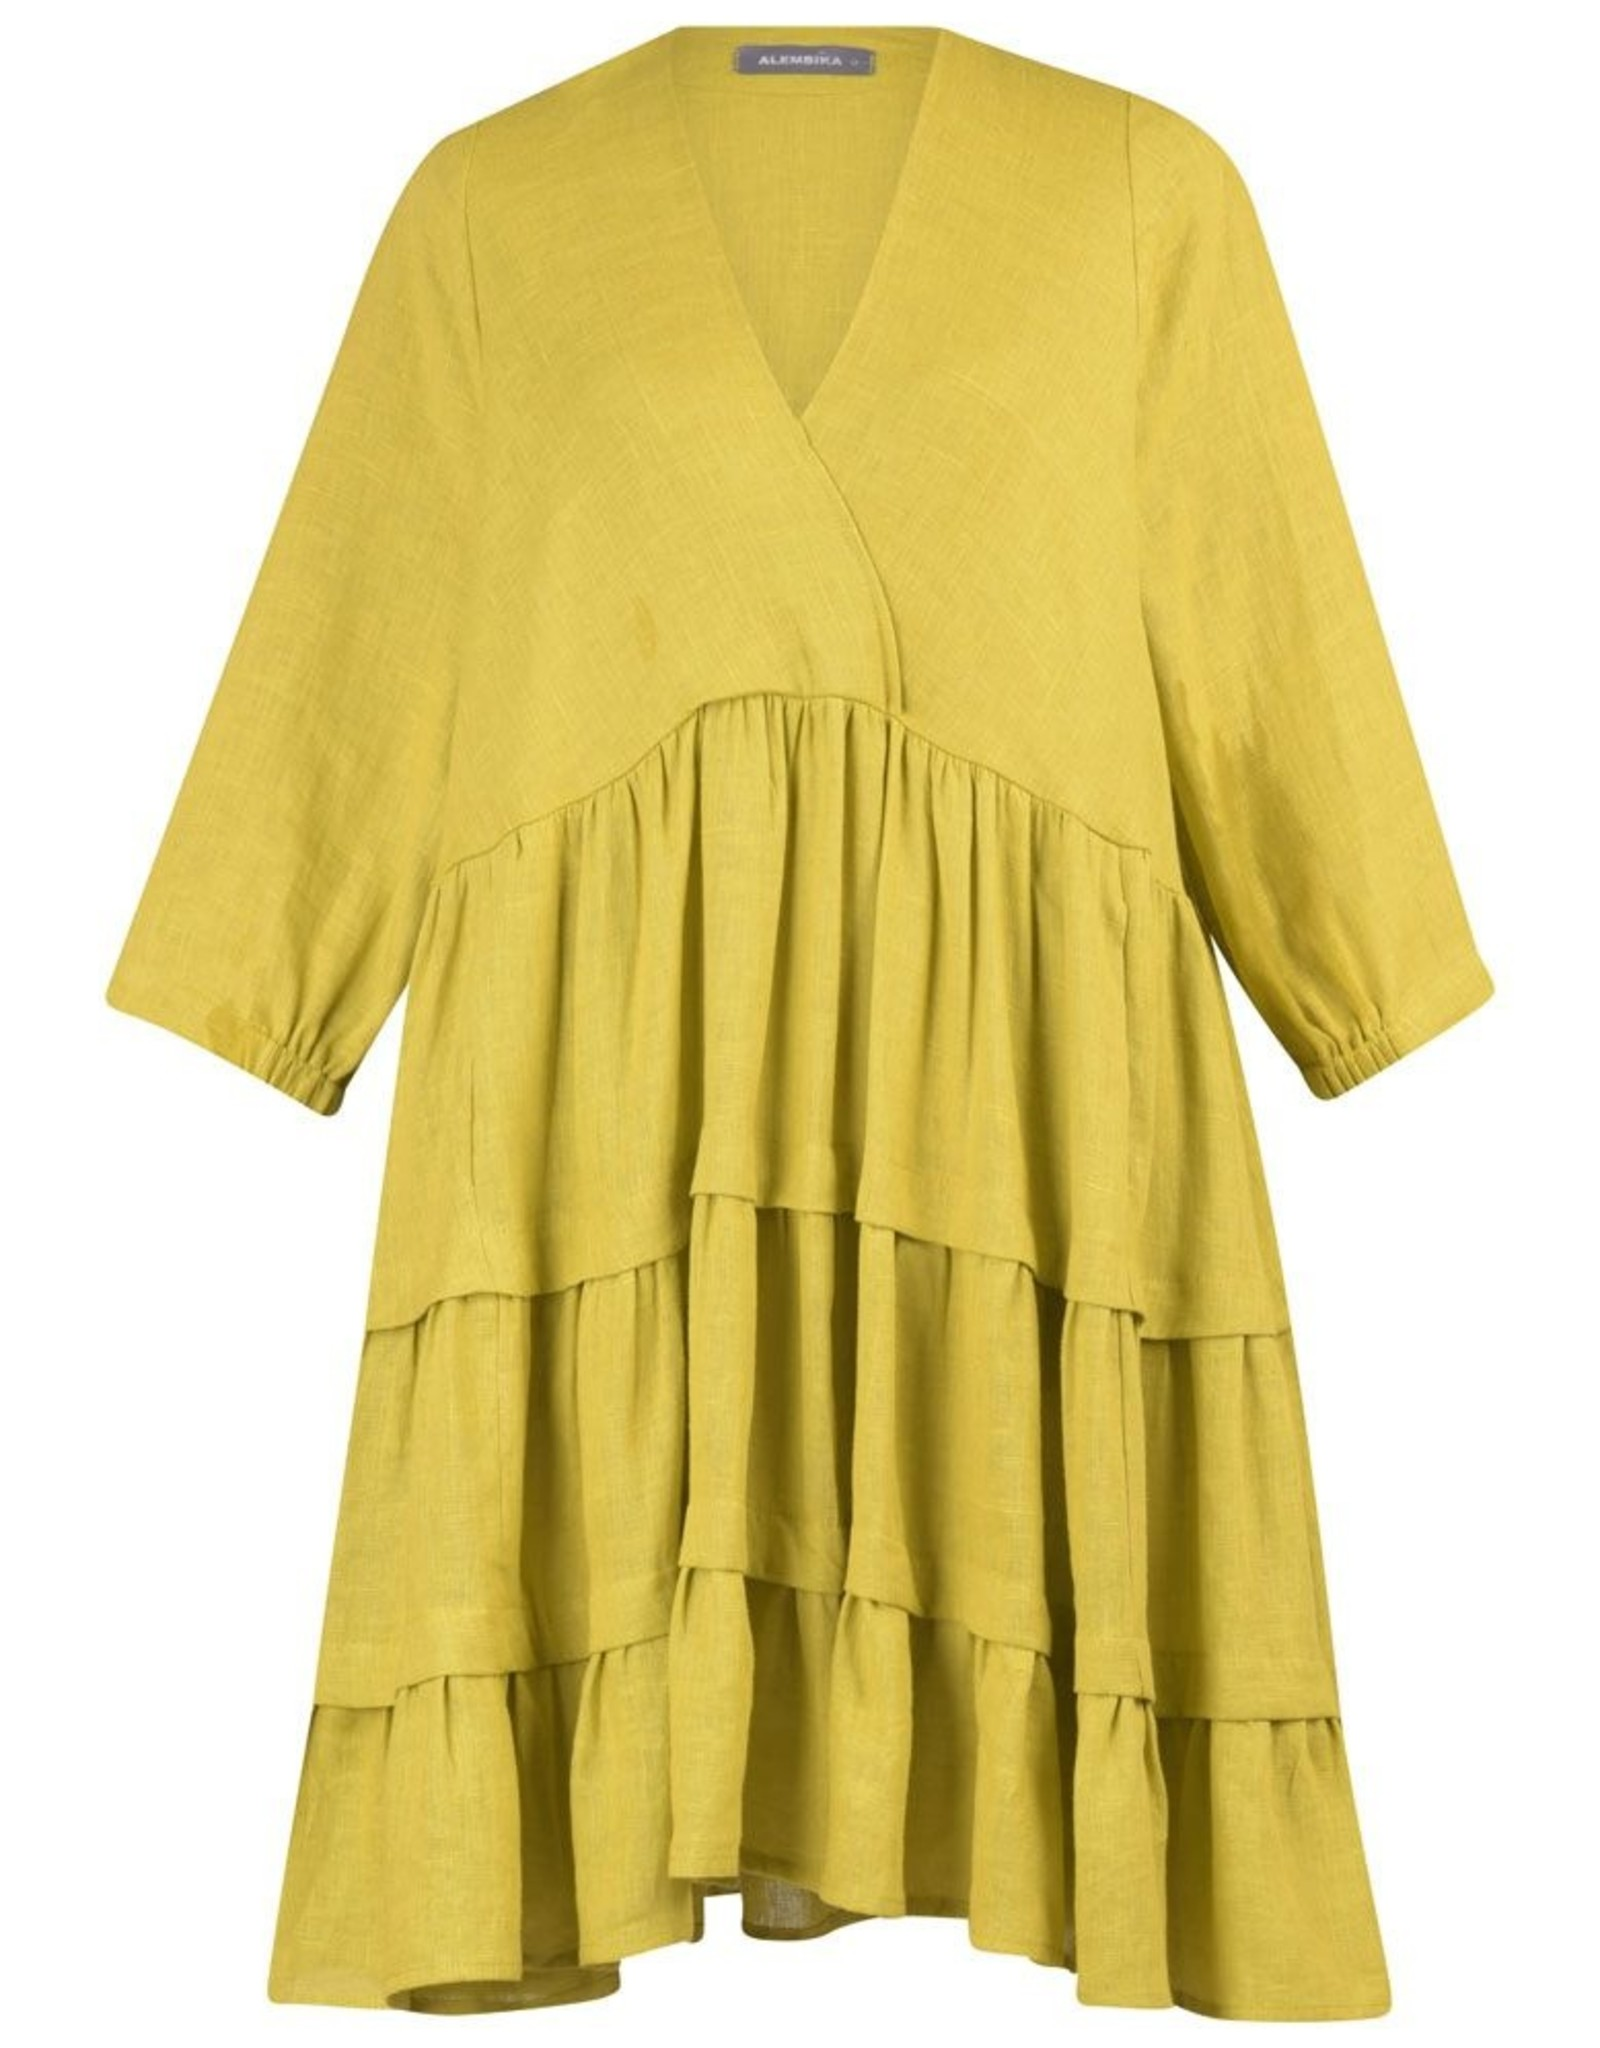 ALEMBIKA ALEMBIKA LINEN RUFFLE DRESS SD207Y